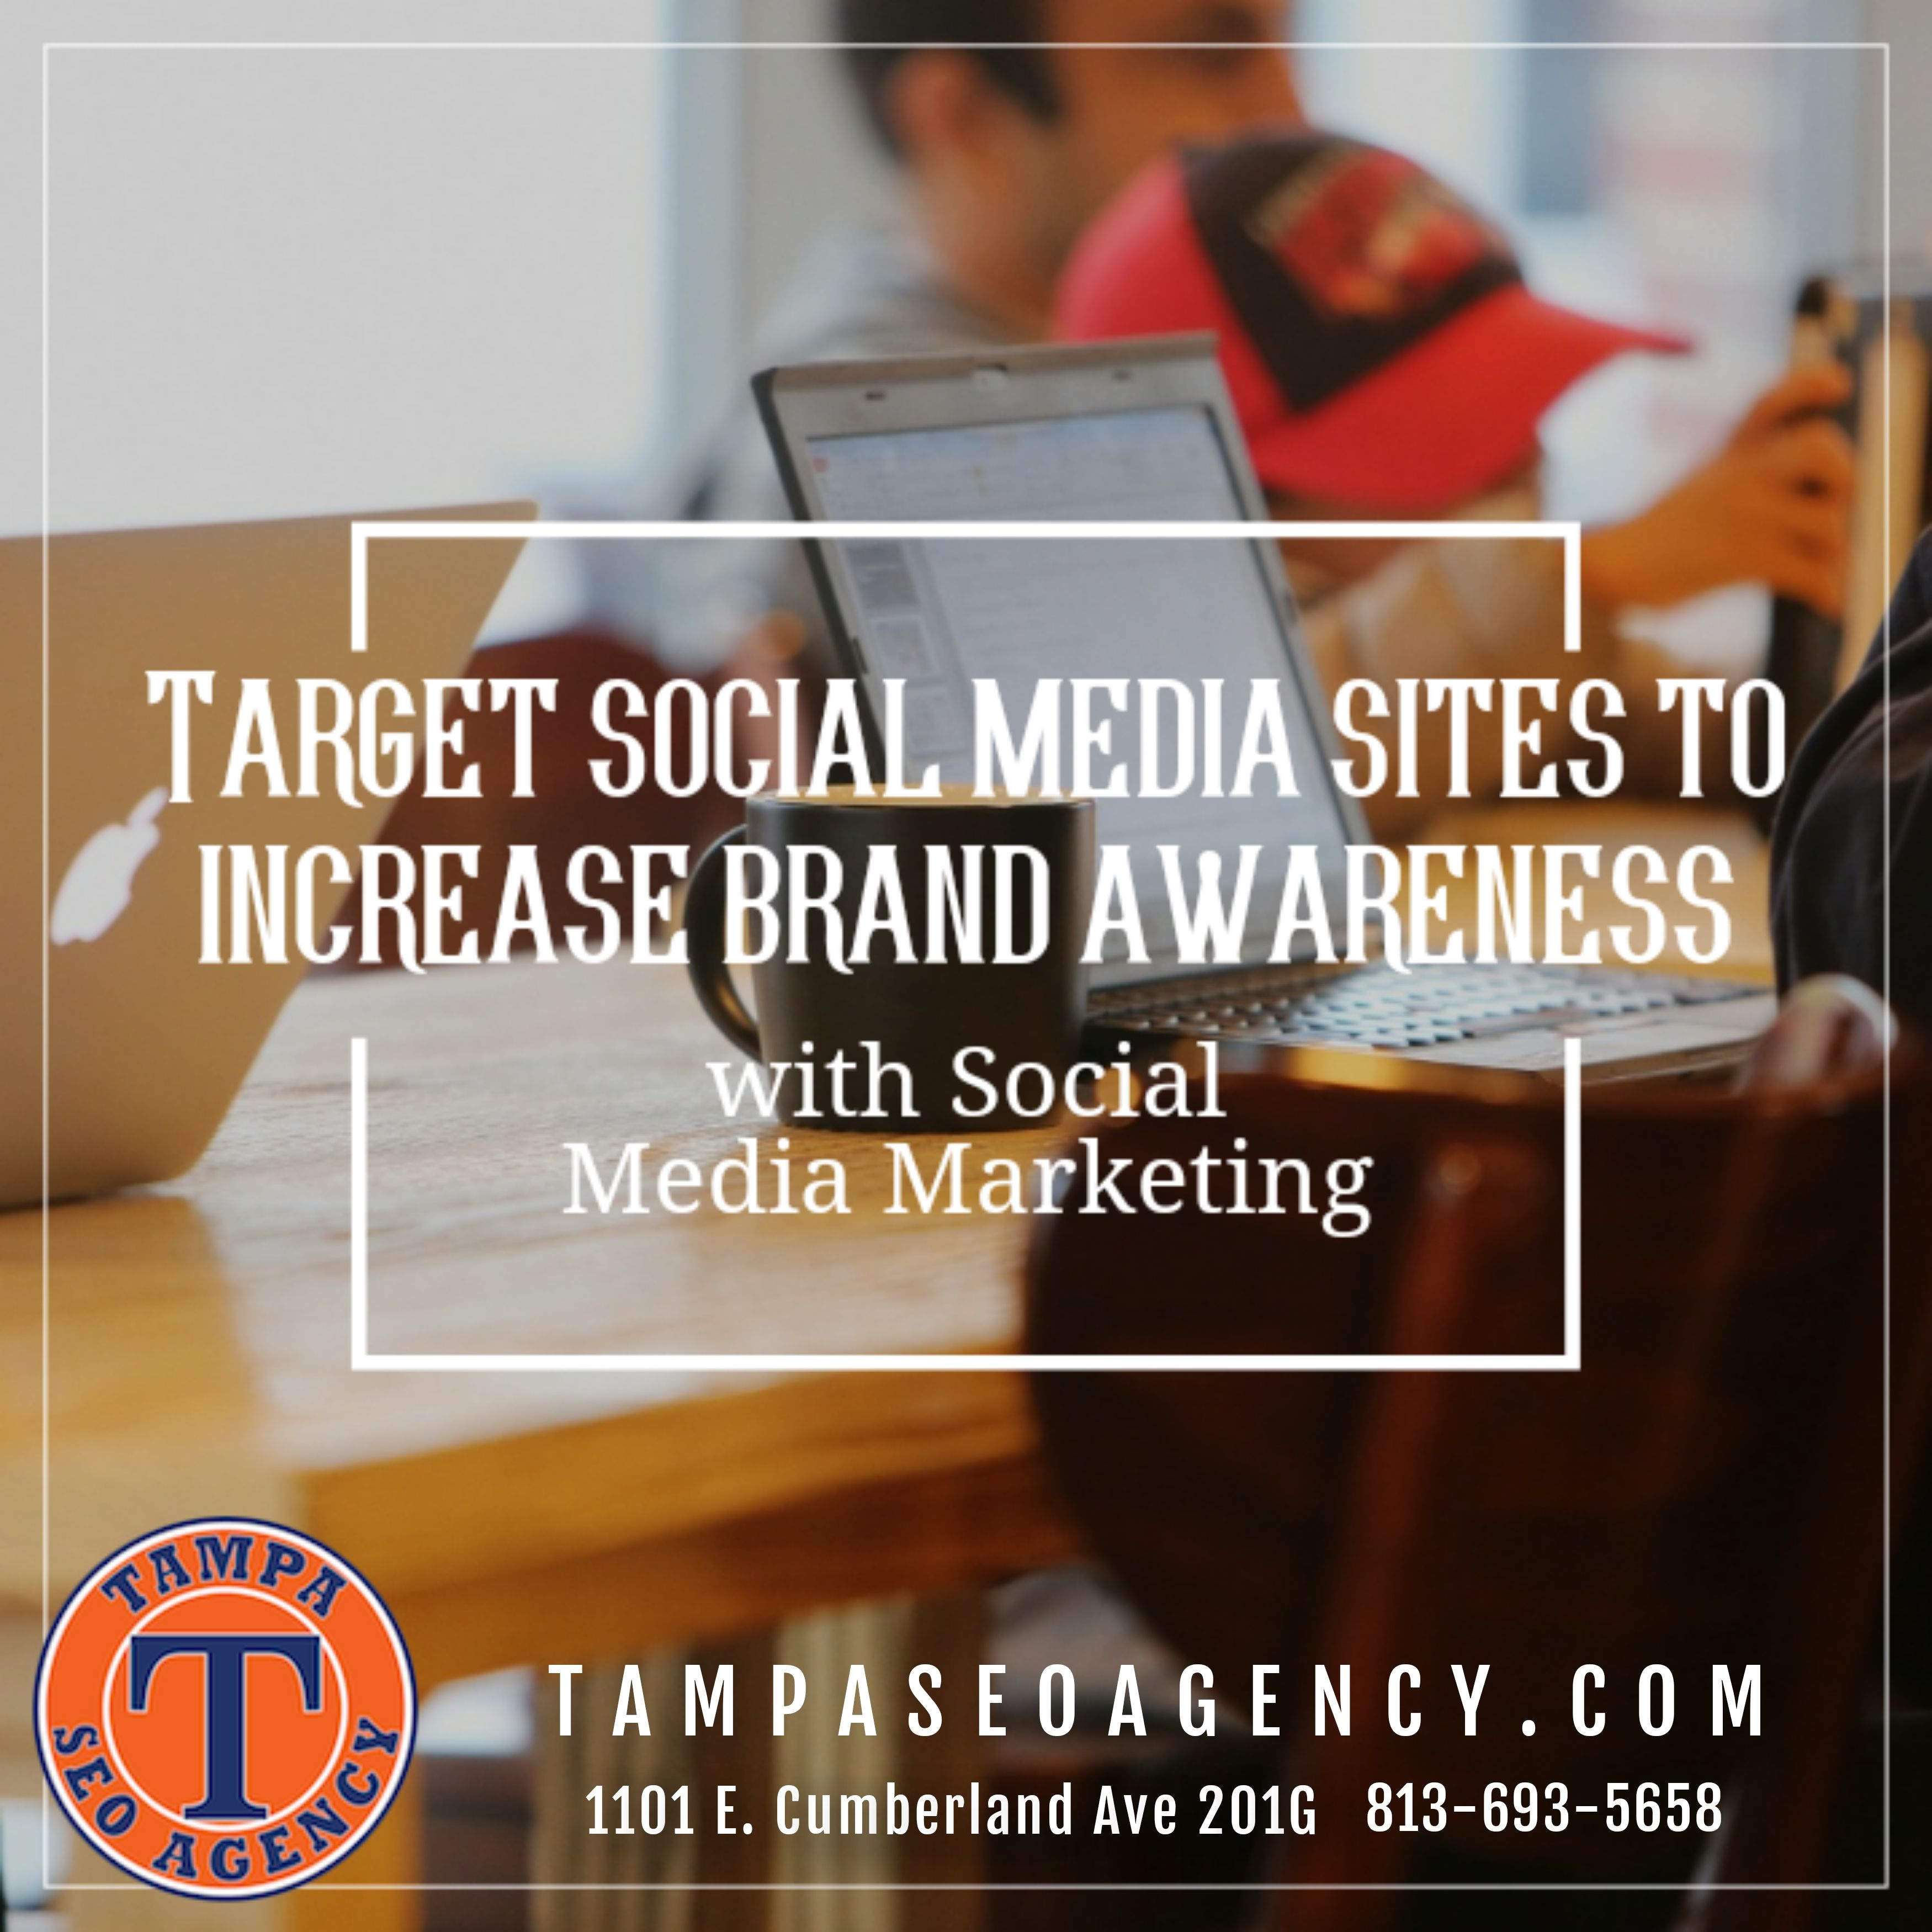 Contact our tampa seo company for more information on our